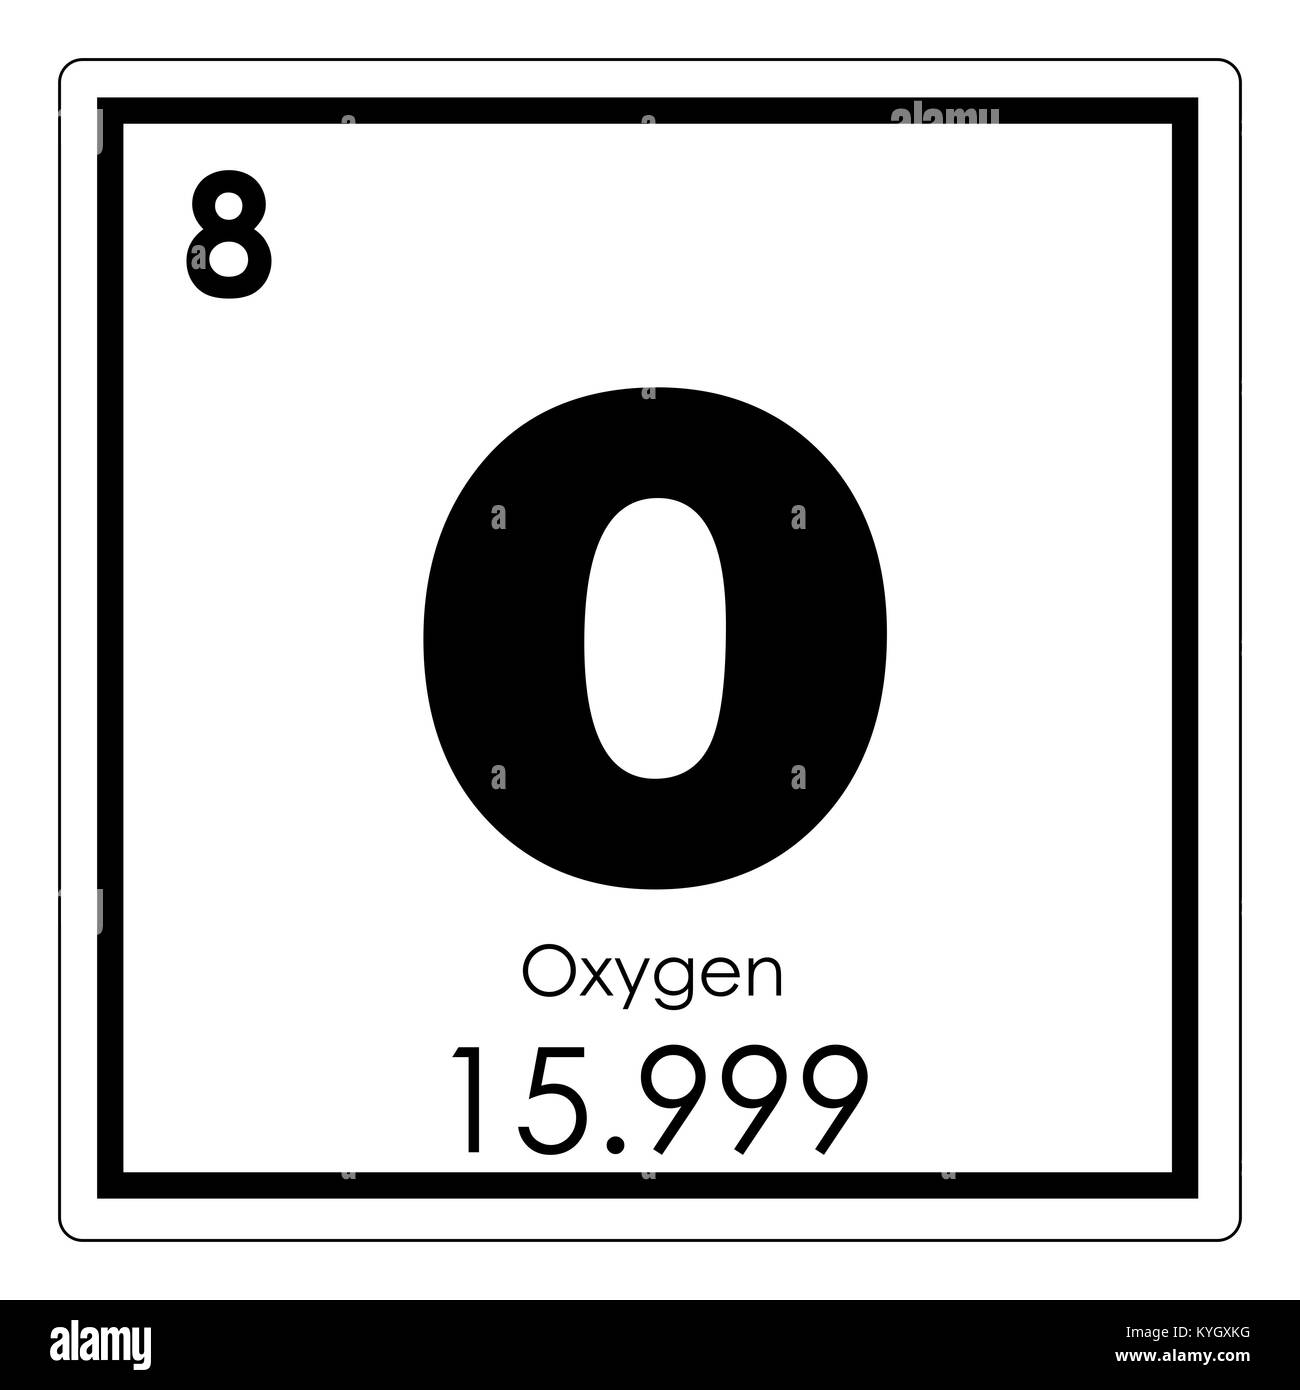 Oxygen chemical element periodic table science symbol stock photo oxygen chemical element periodic table science symbol buycottarizona Image collections